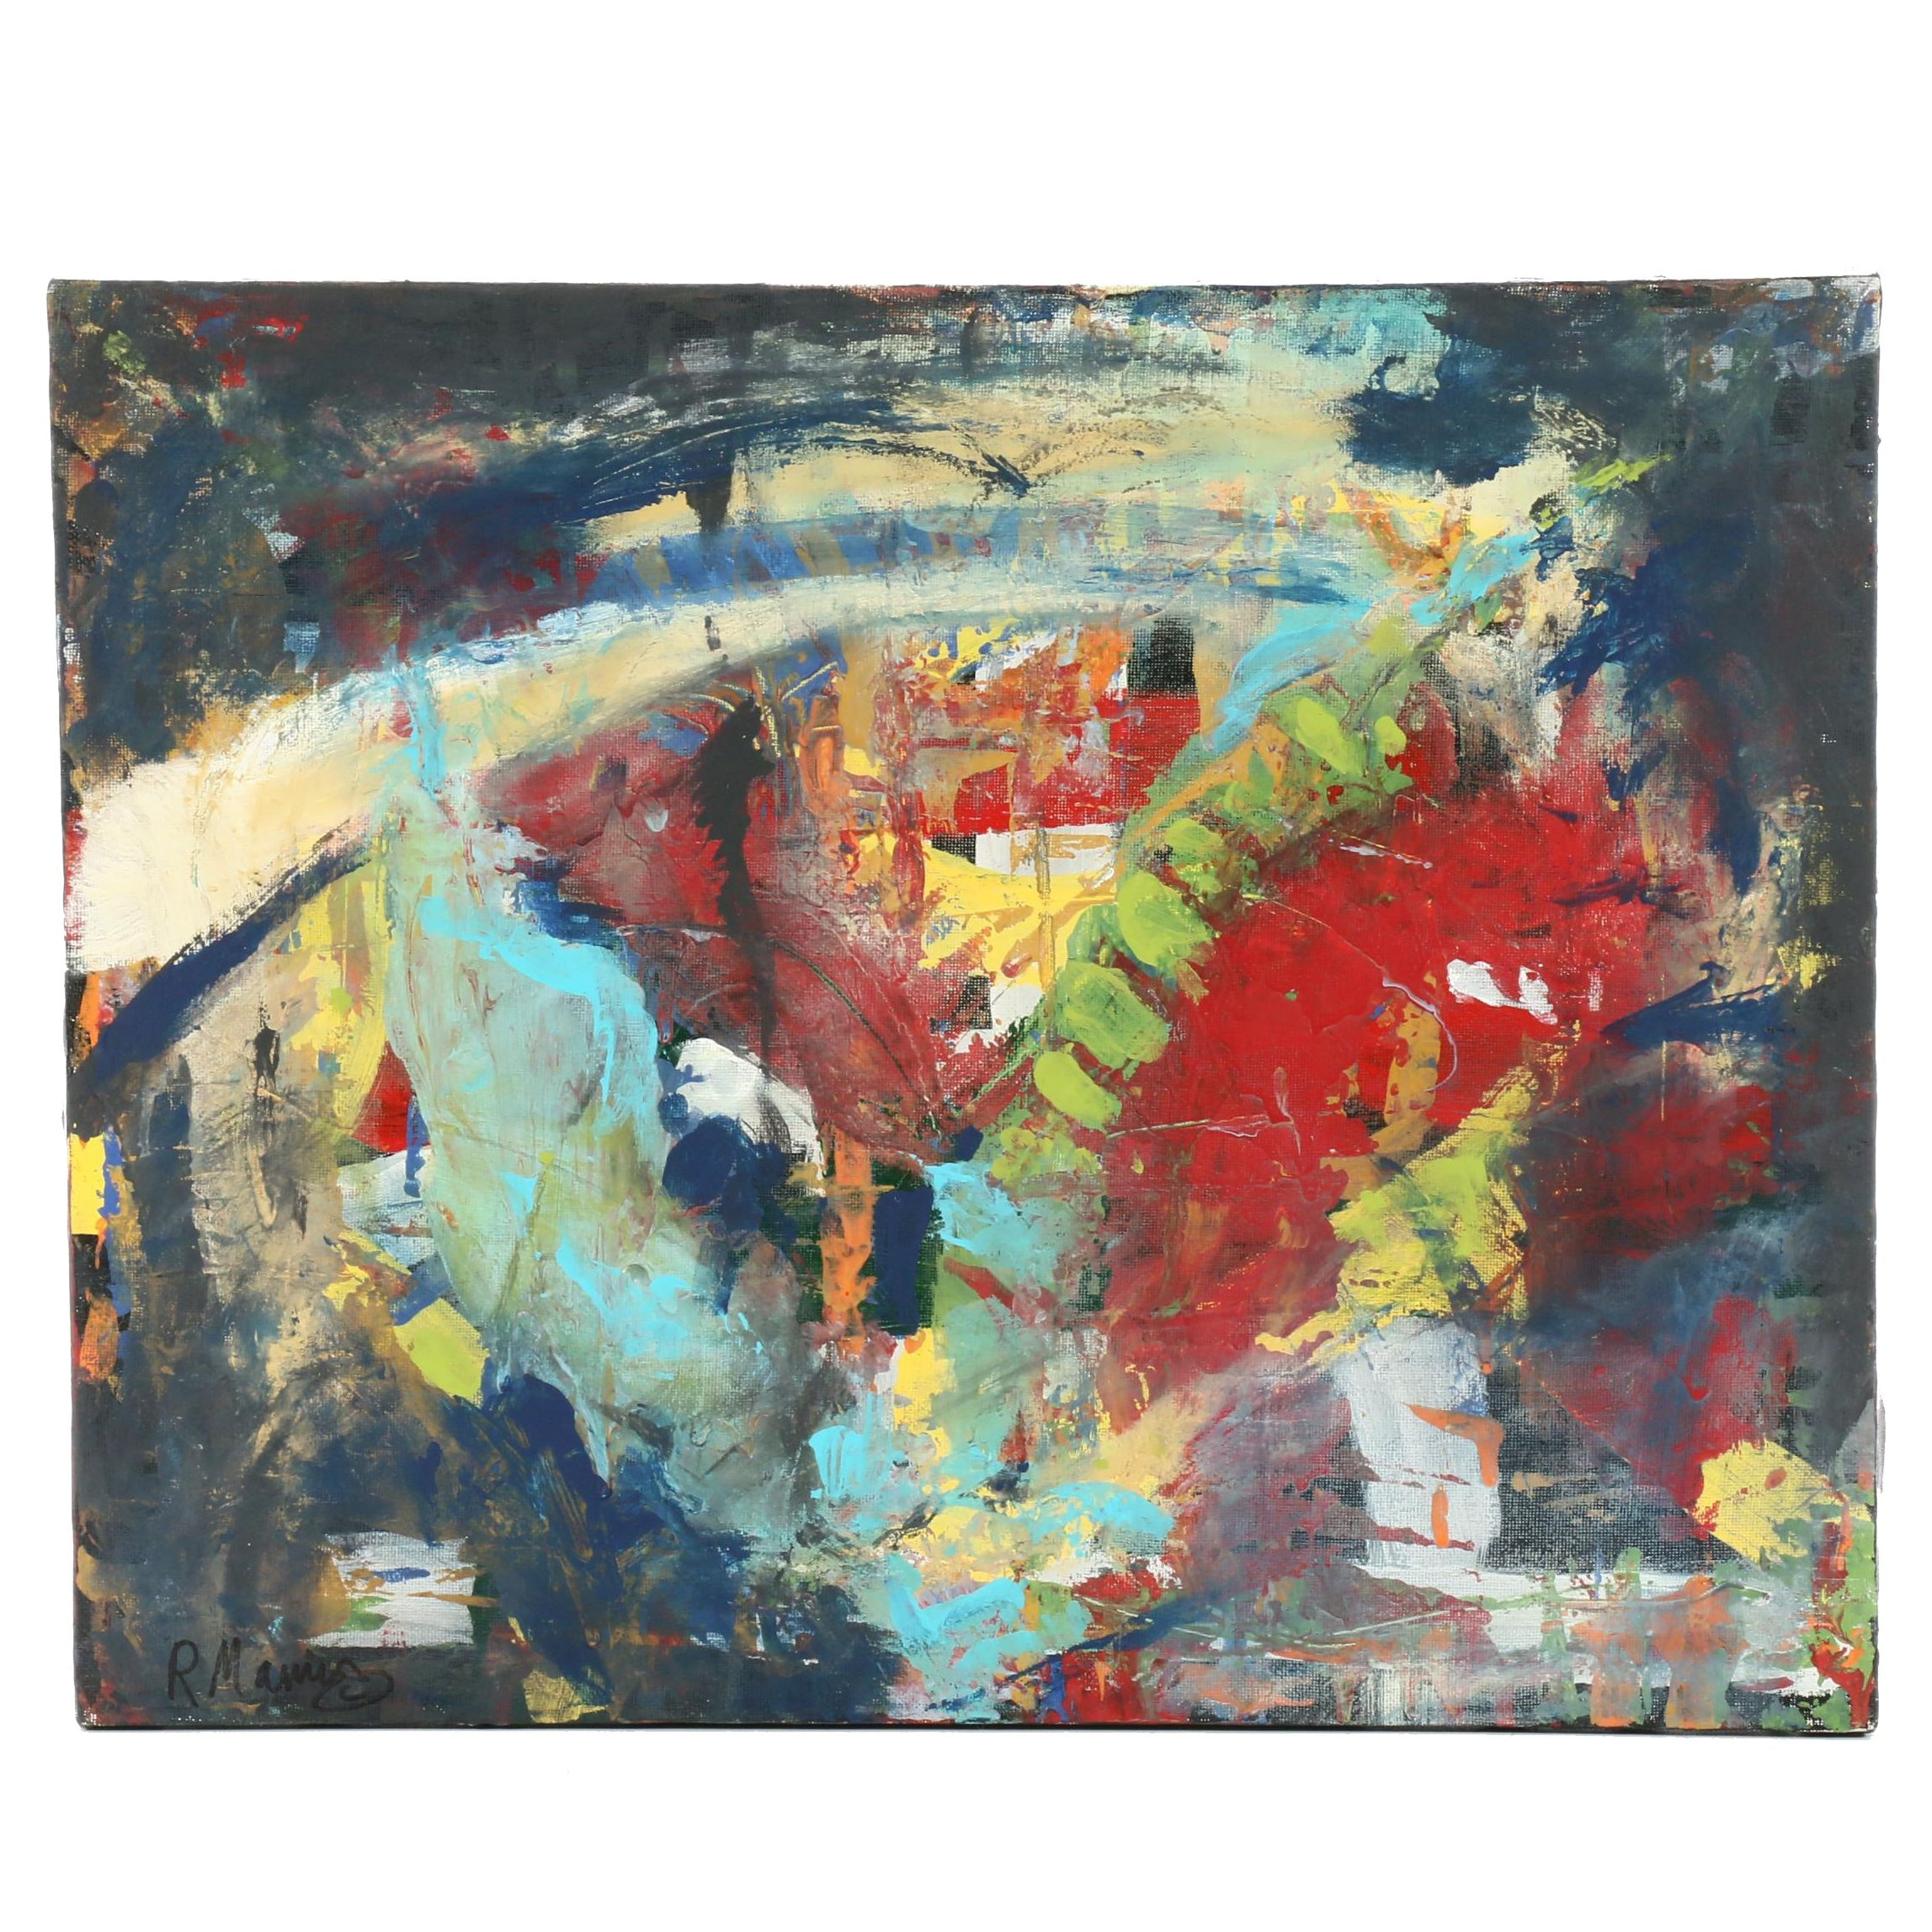 Rebecca Manns Contemporary Abstract Mixed Media Painting